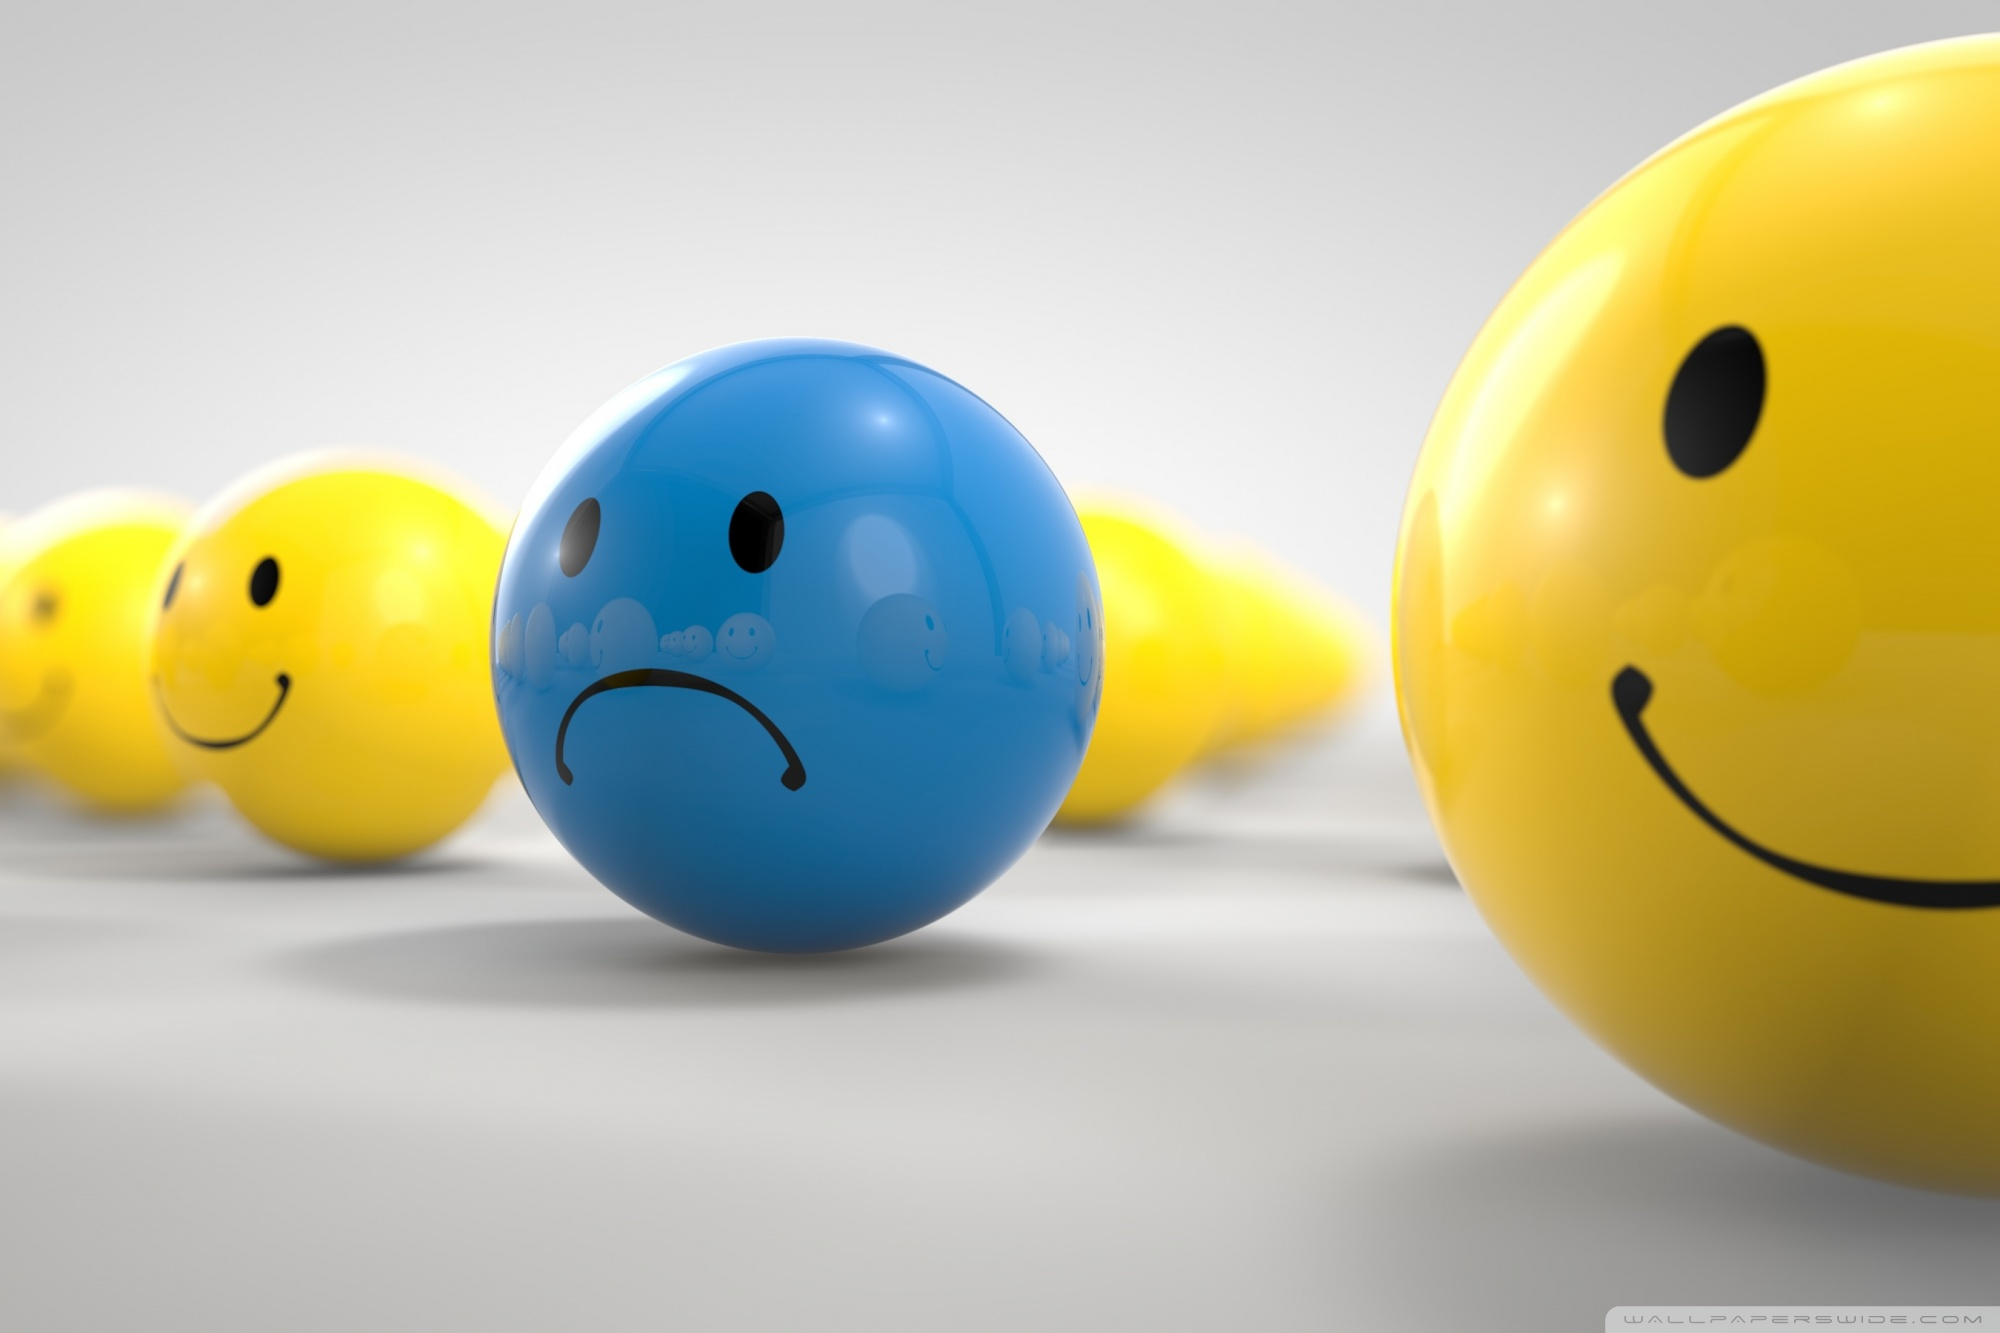 sad ball ❤ uhd desktop wallpaper for ultra hd 4k 8k • widescreen